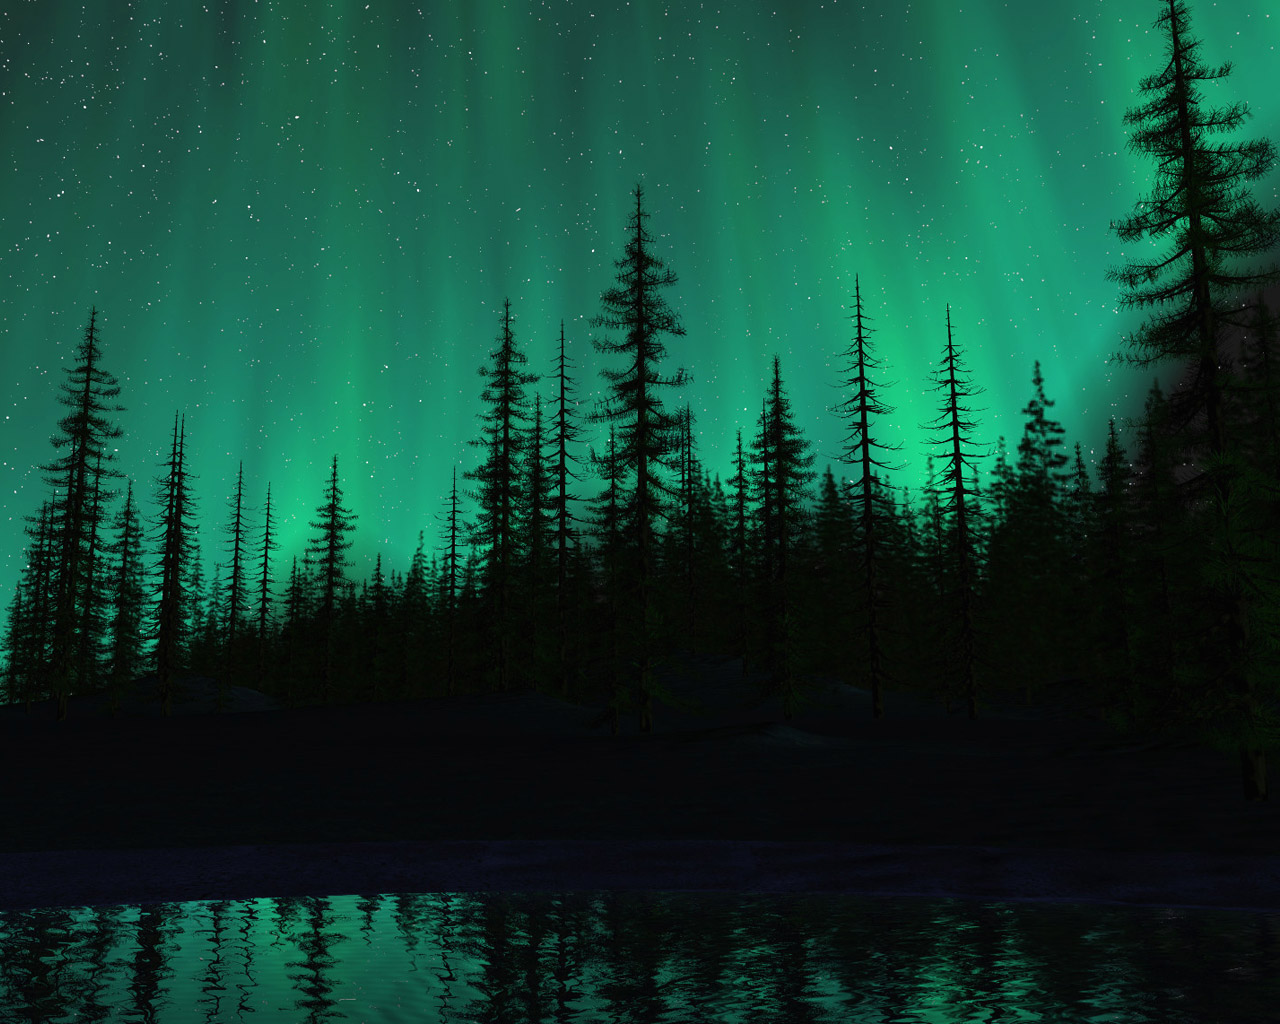 Fairy Tale Forest - A screensaver for your desktop